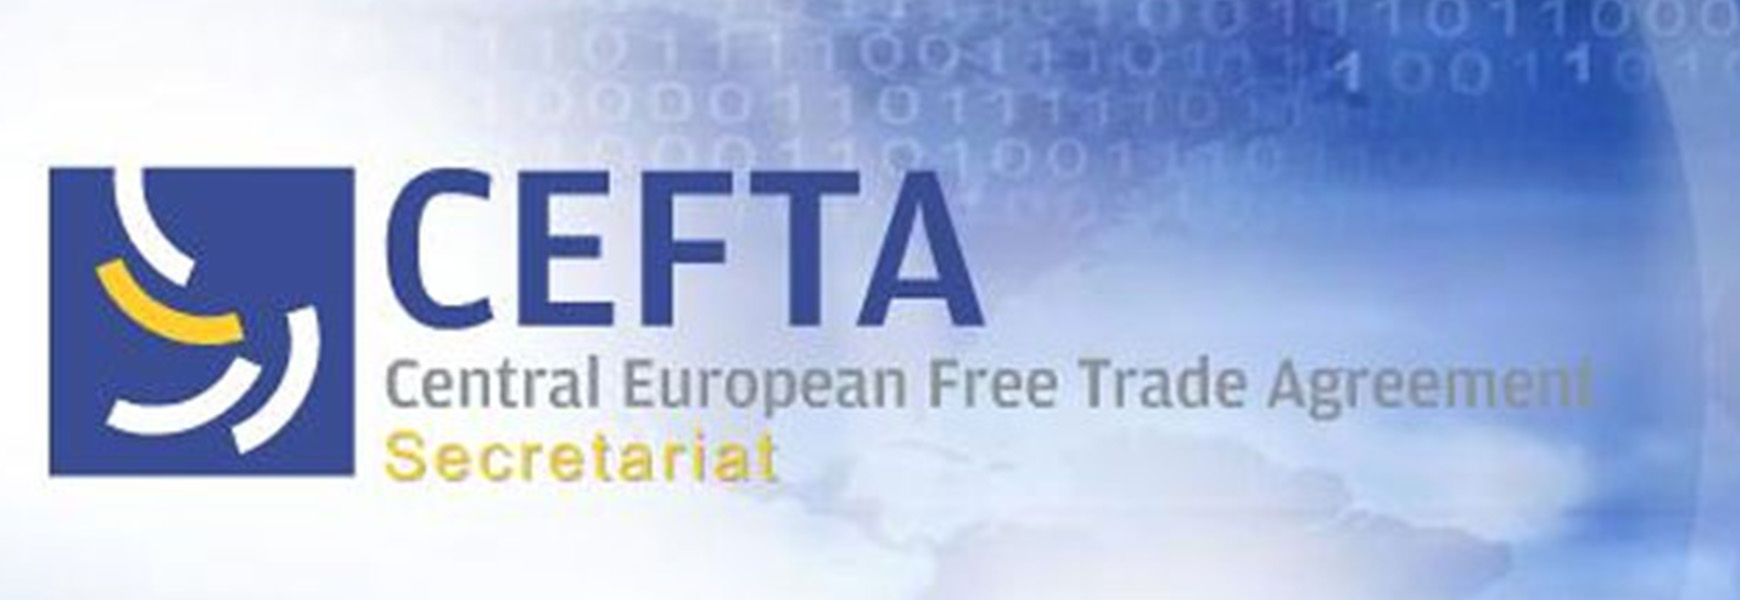 Montenegro chairs CEFTA in one of the most demanding years